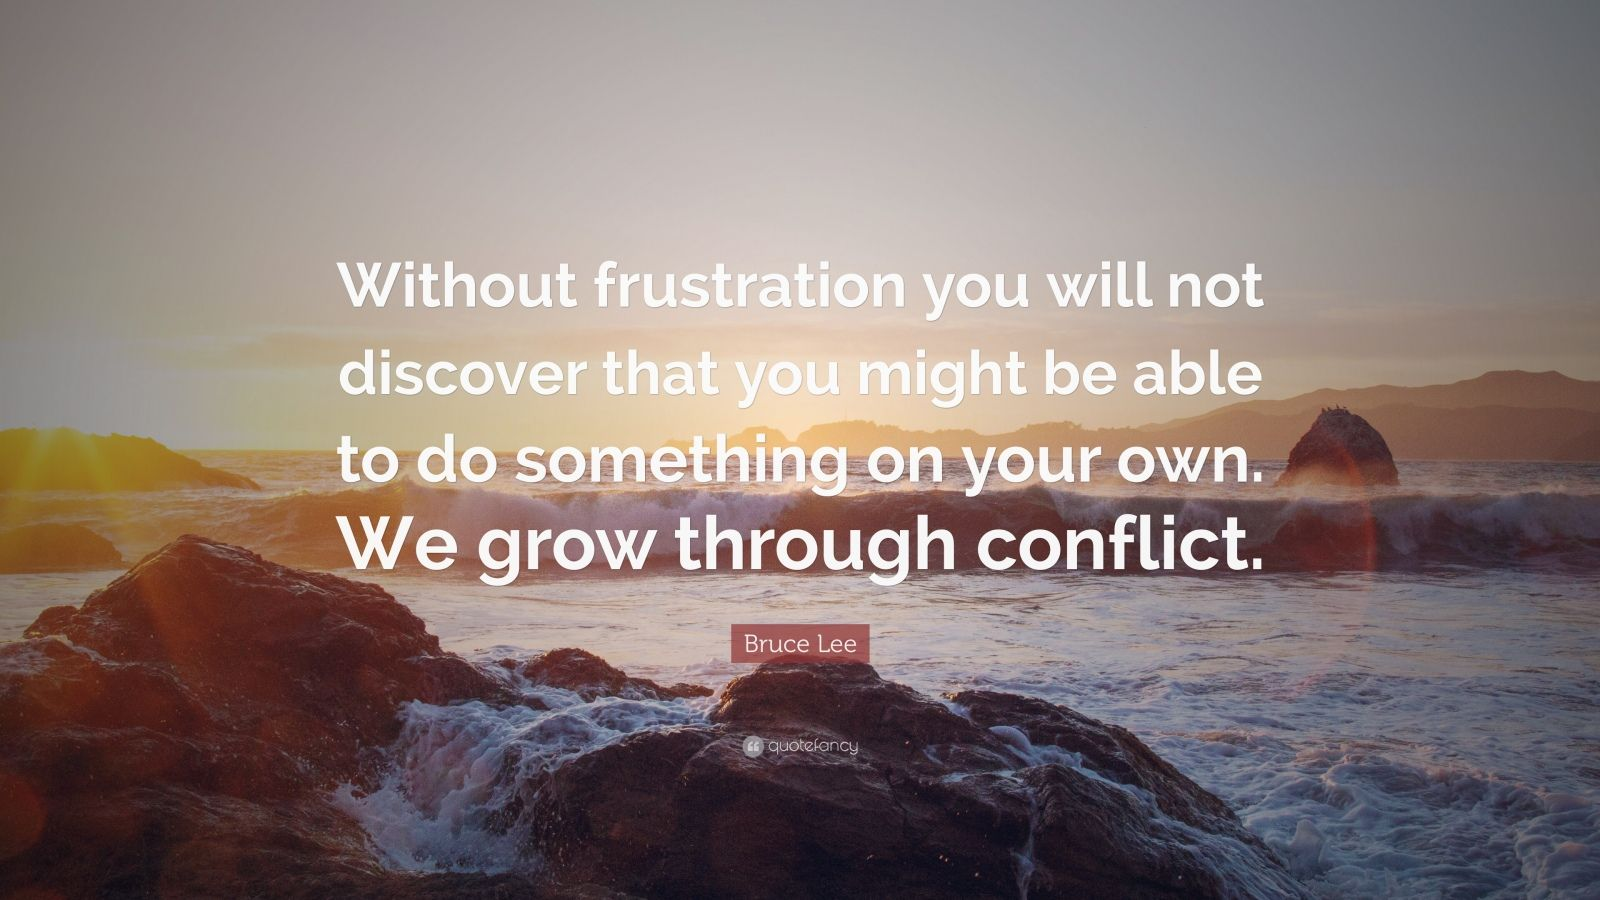 """Bruce Lee Quote: """"Without frustration you will not discover that you might be able to do something on your own. We grow through conflict."""""""